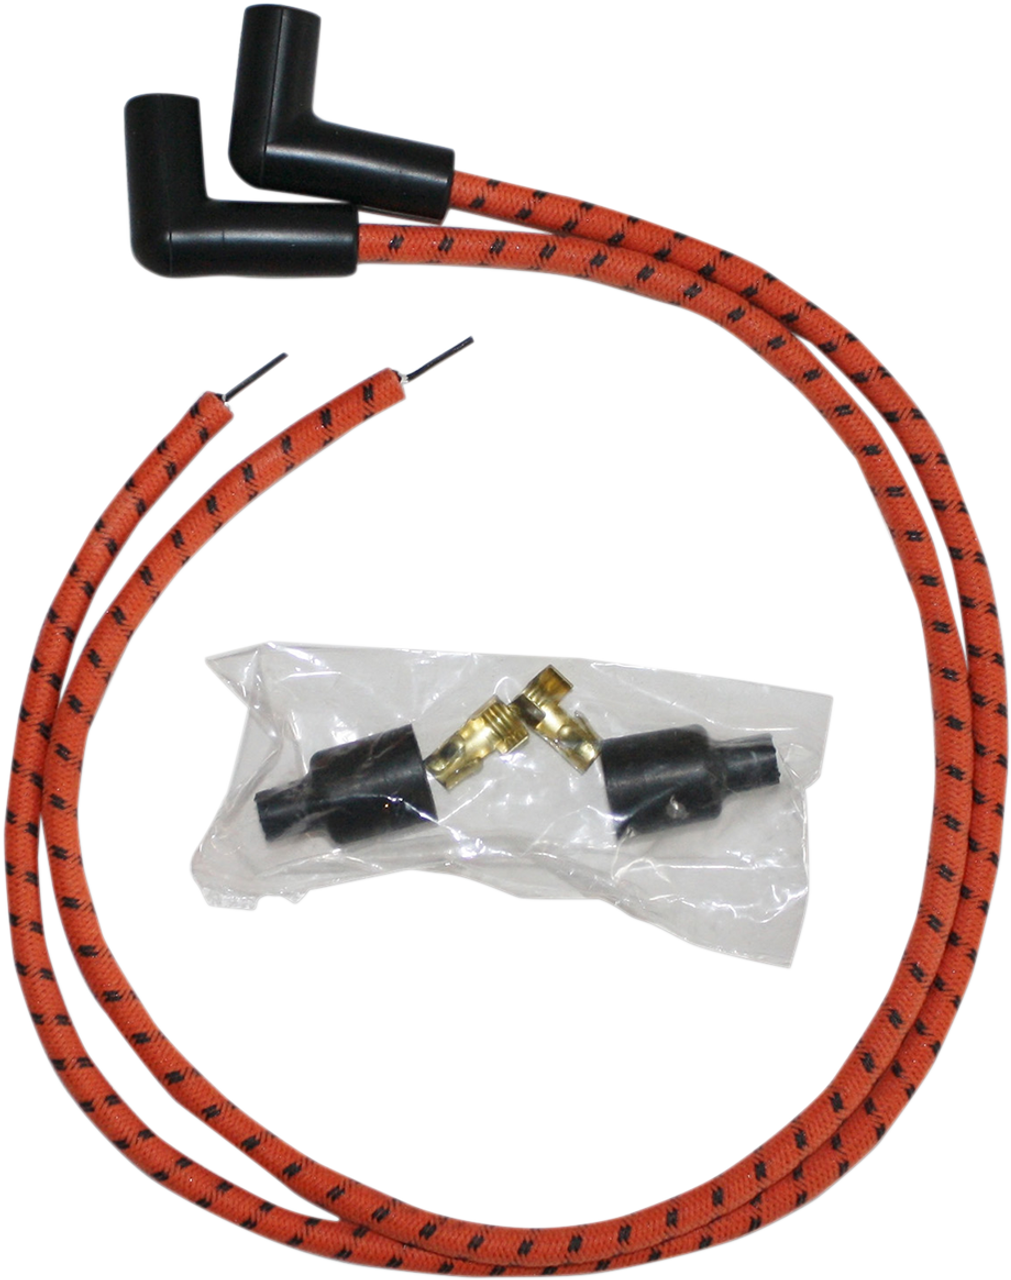 Sumax 8mm Universal Spark Plug Wire Kit for Harley - Orange with Black on